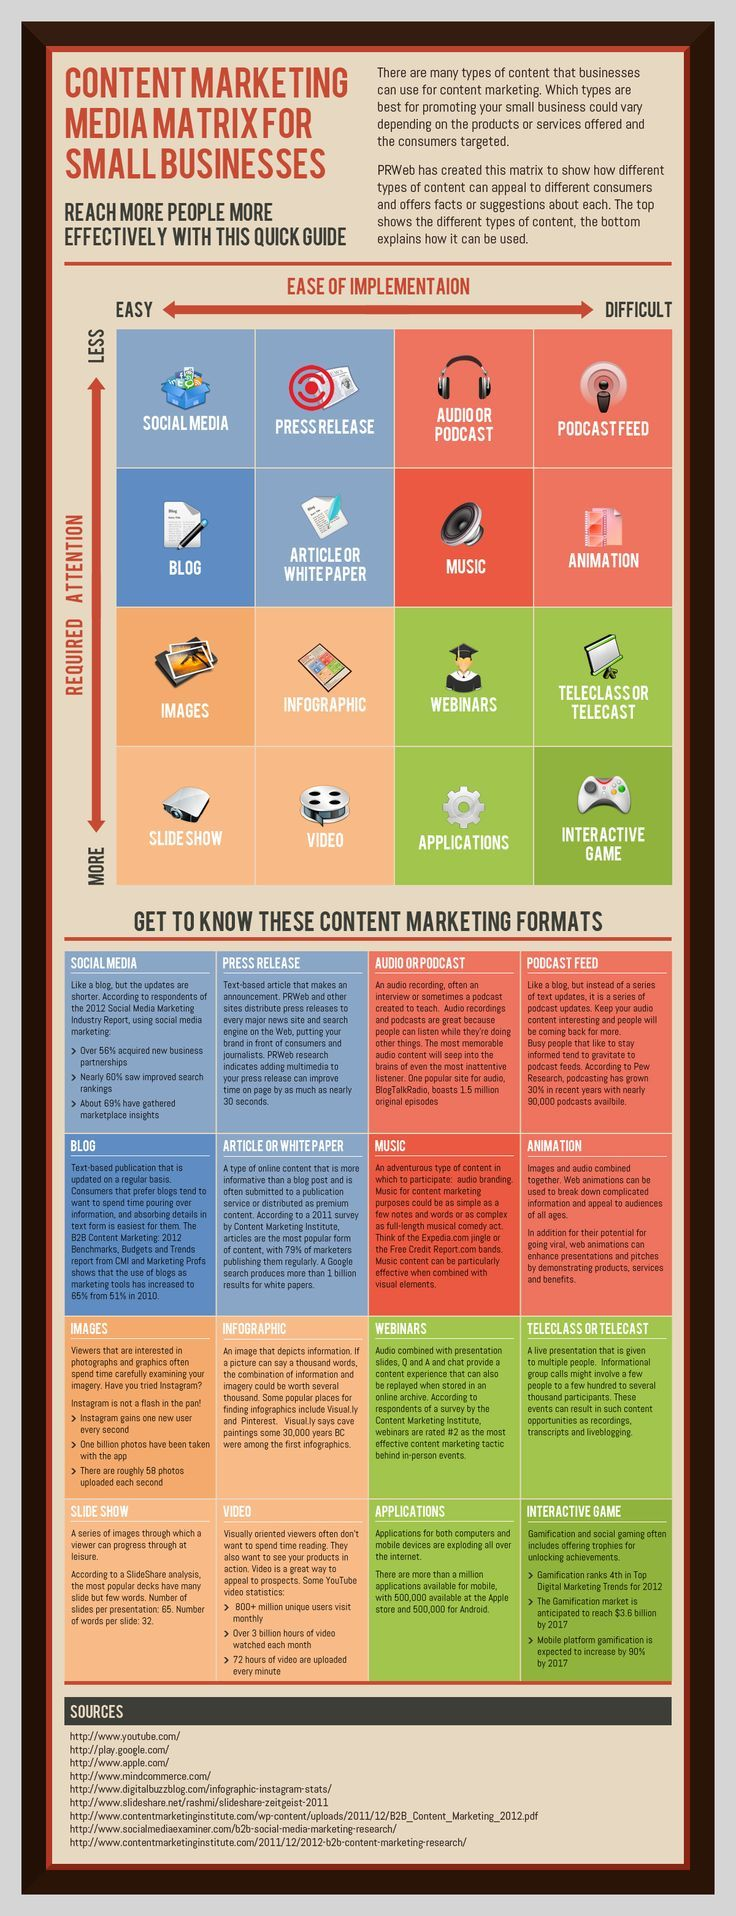 Content Marketing Quick Guide For Businesses : Reach More People More Effectively